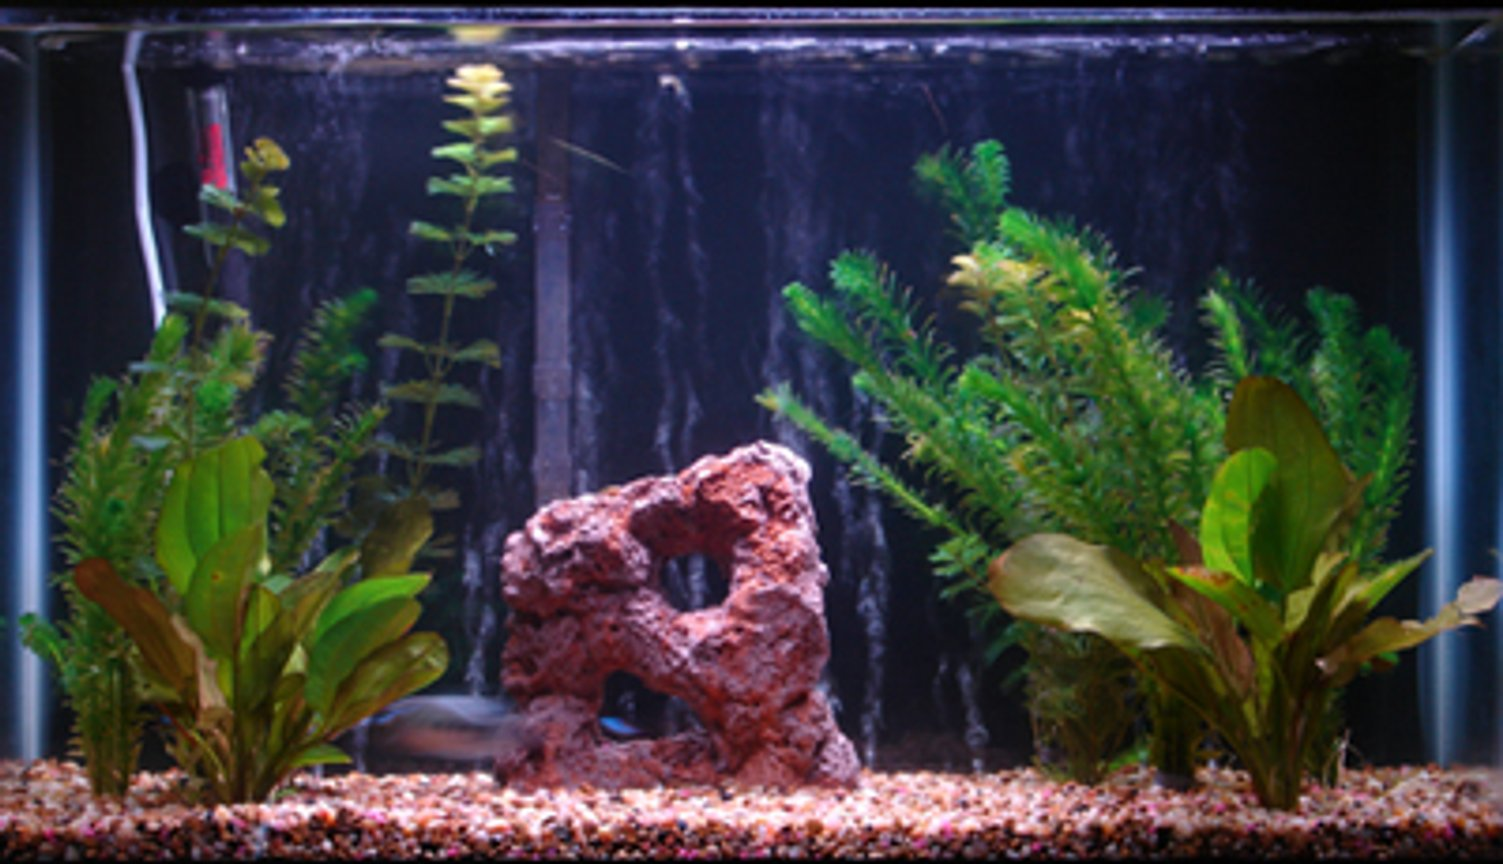 29 gallons freshwater fish tank (mostly fish and non-living decorations) - the tank